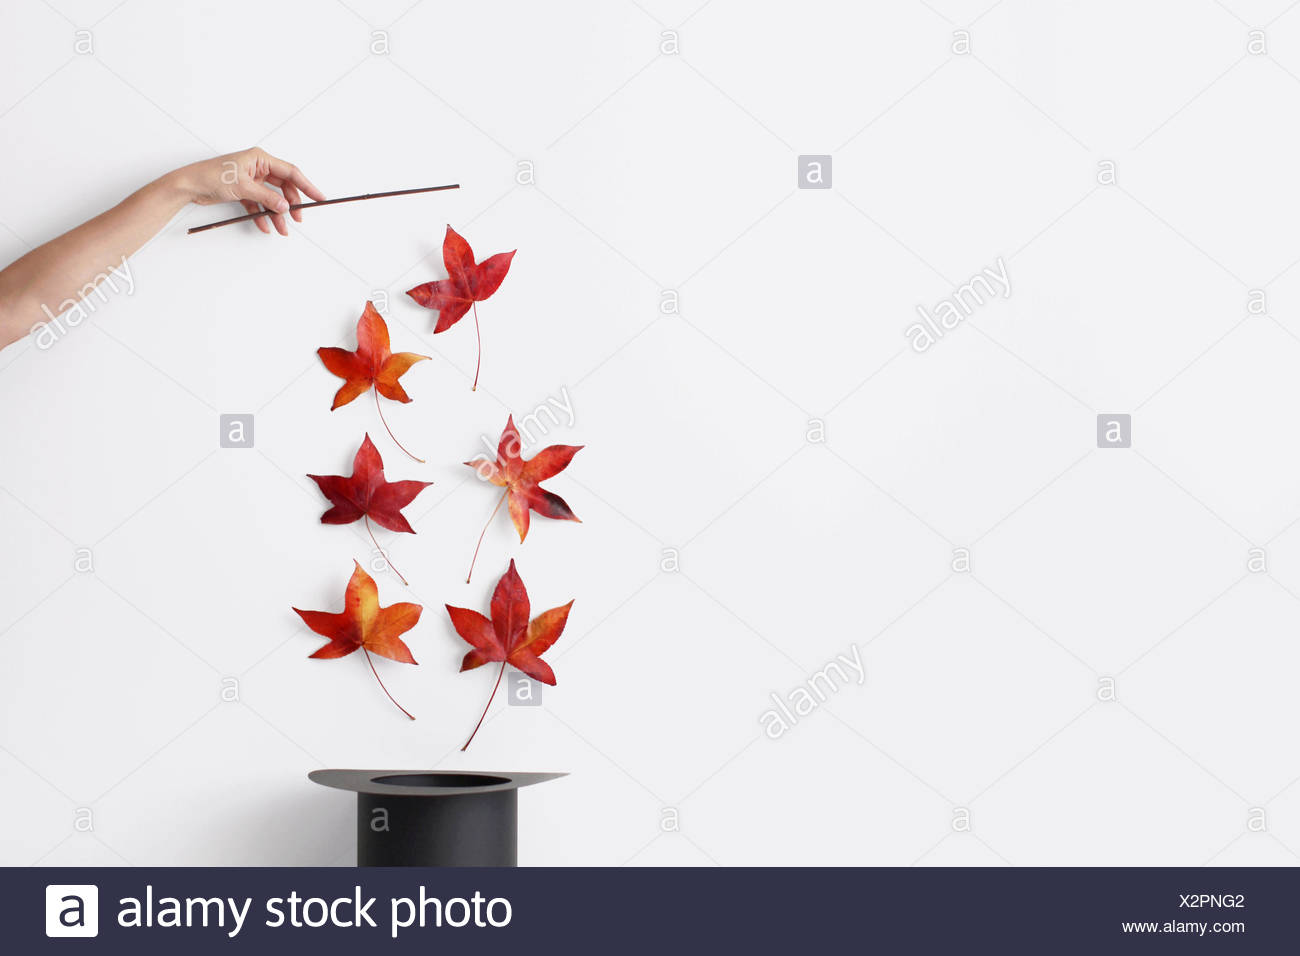 Woman's hand holding a magic wand pulling autumn leaves out of a hat - Stock Image